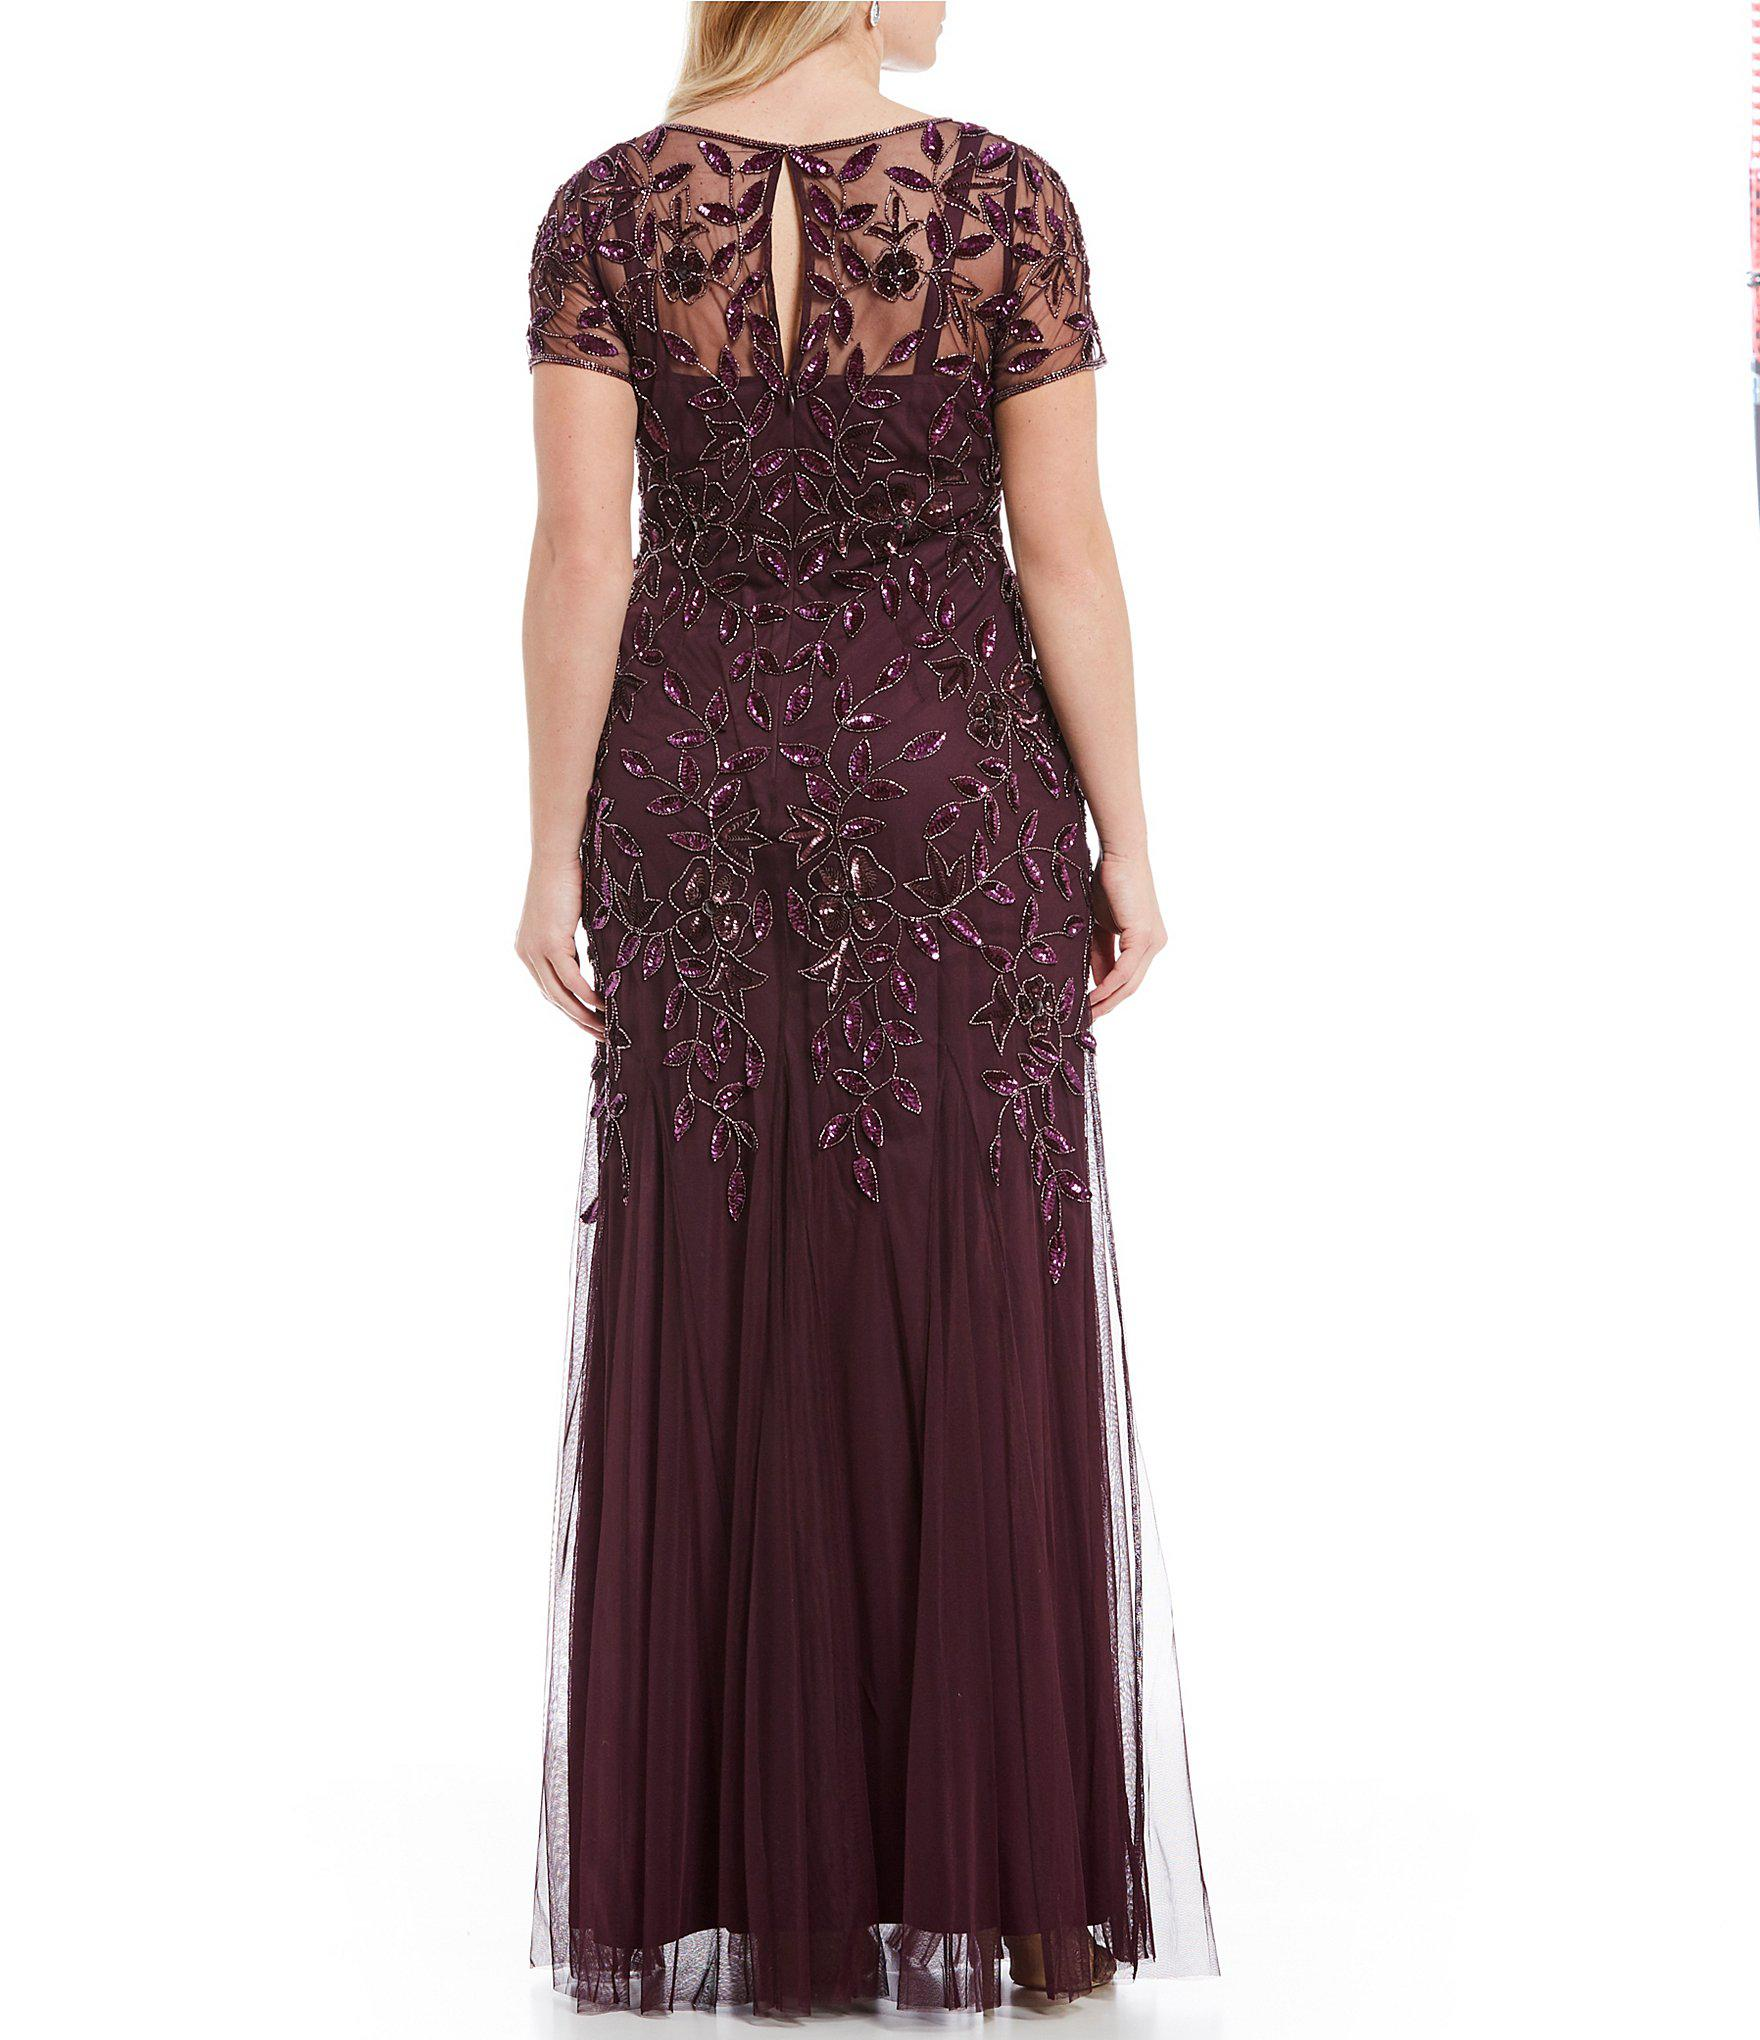 c5b37a121da Adrianna Papell - Purple Plus Floral Beaded Gown - Lyst. View fullscreen